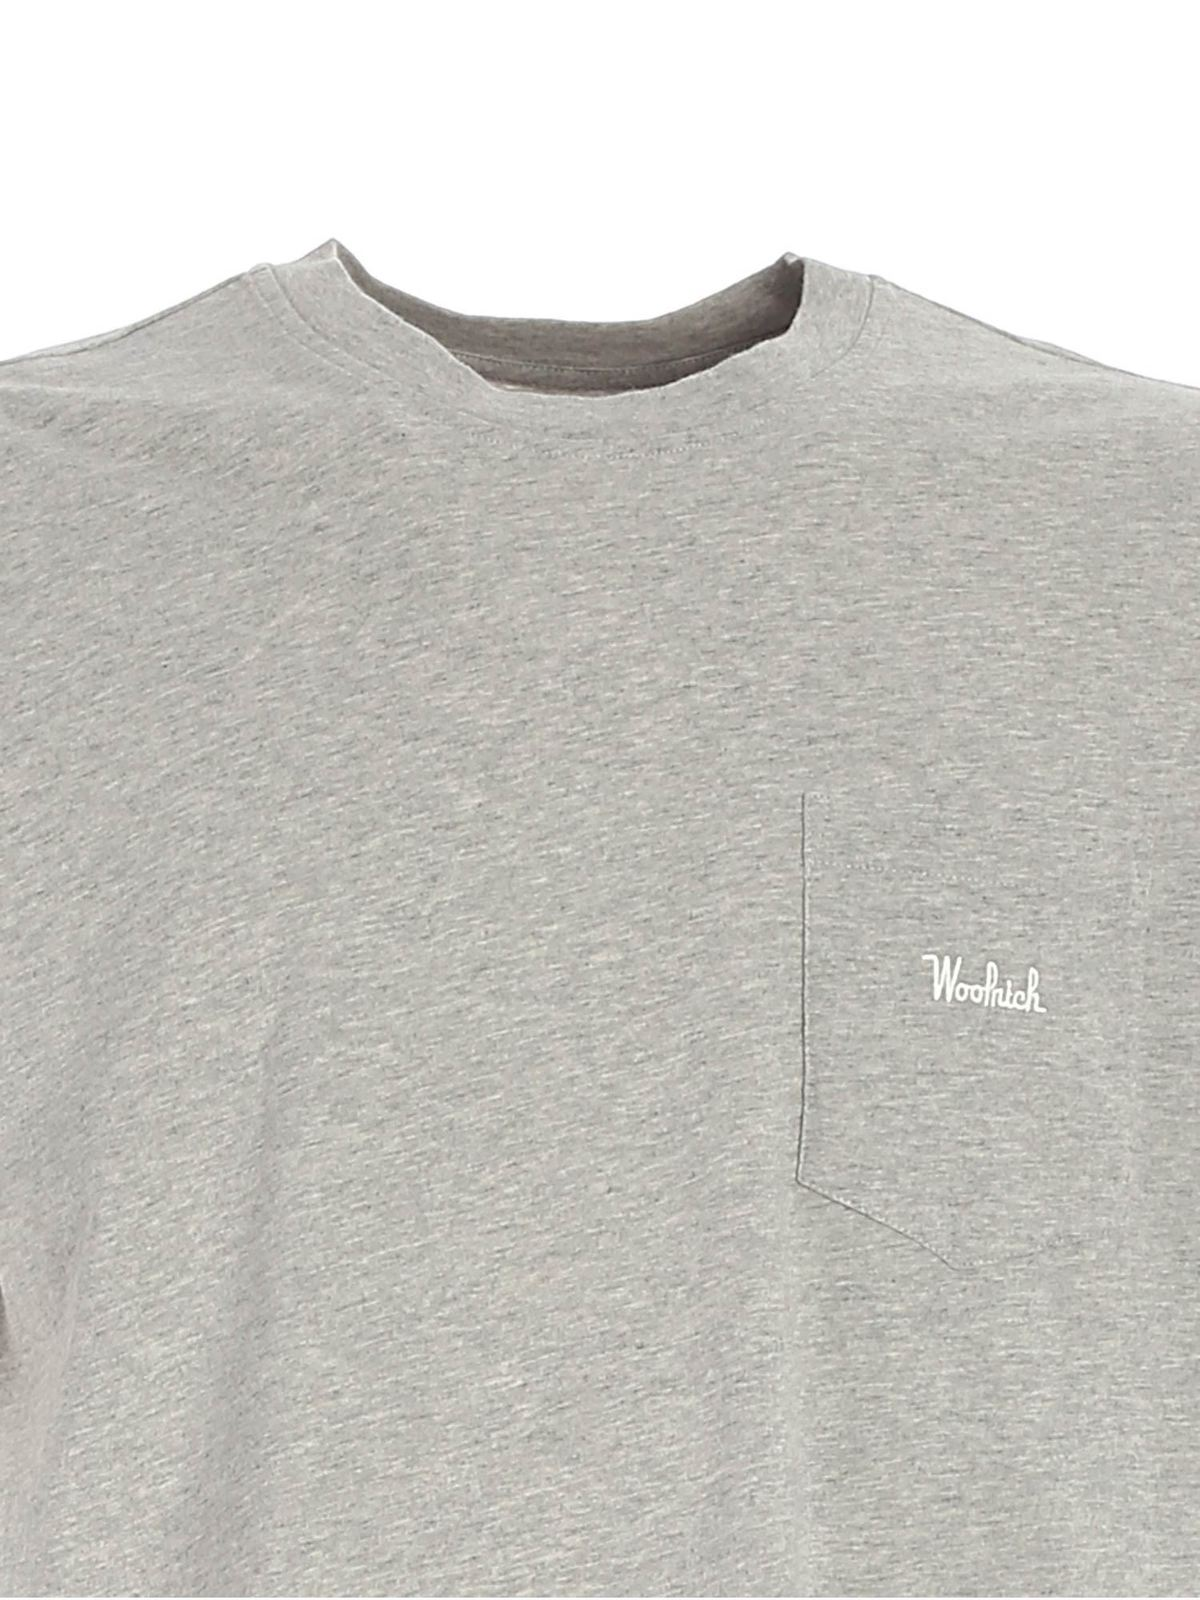 Picture of Woolrich | Pocket Tee